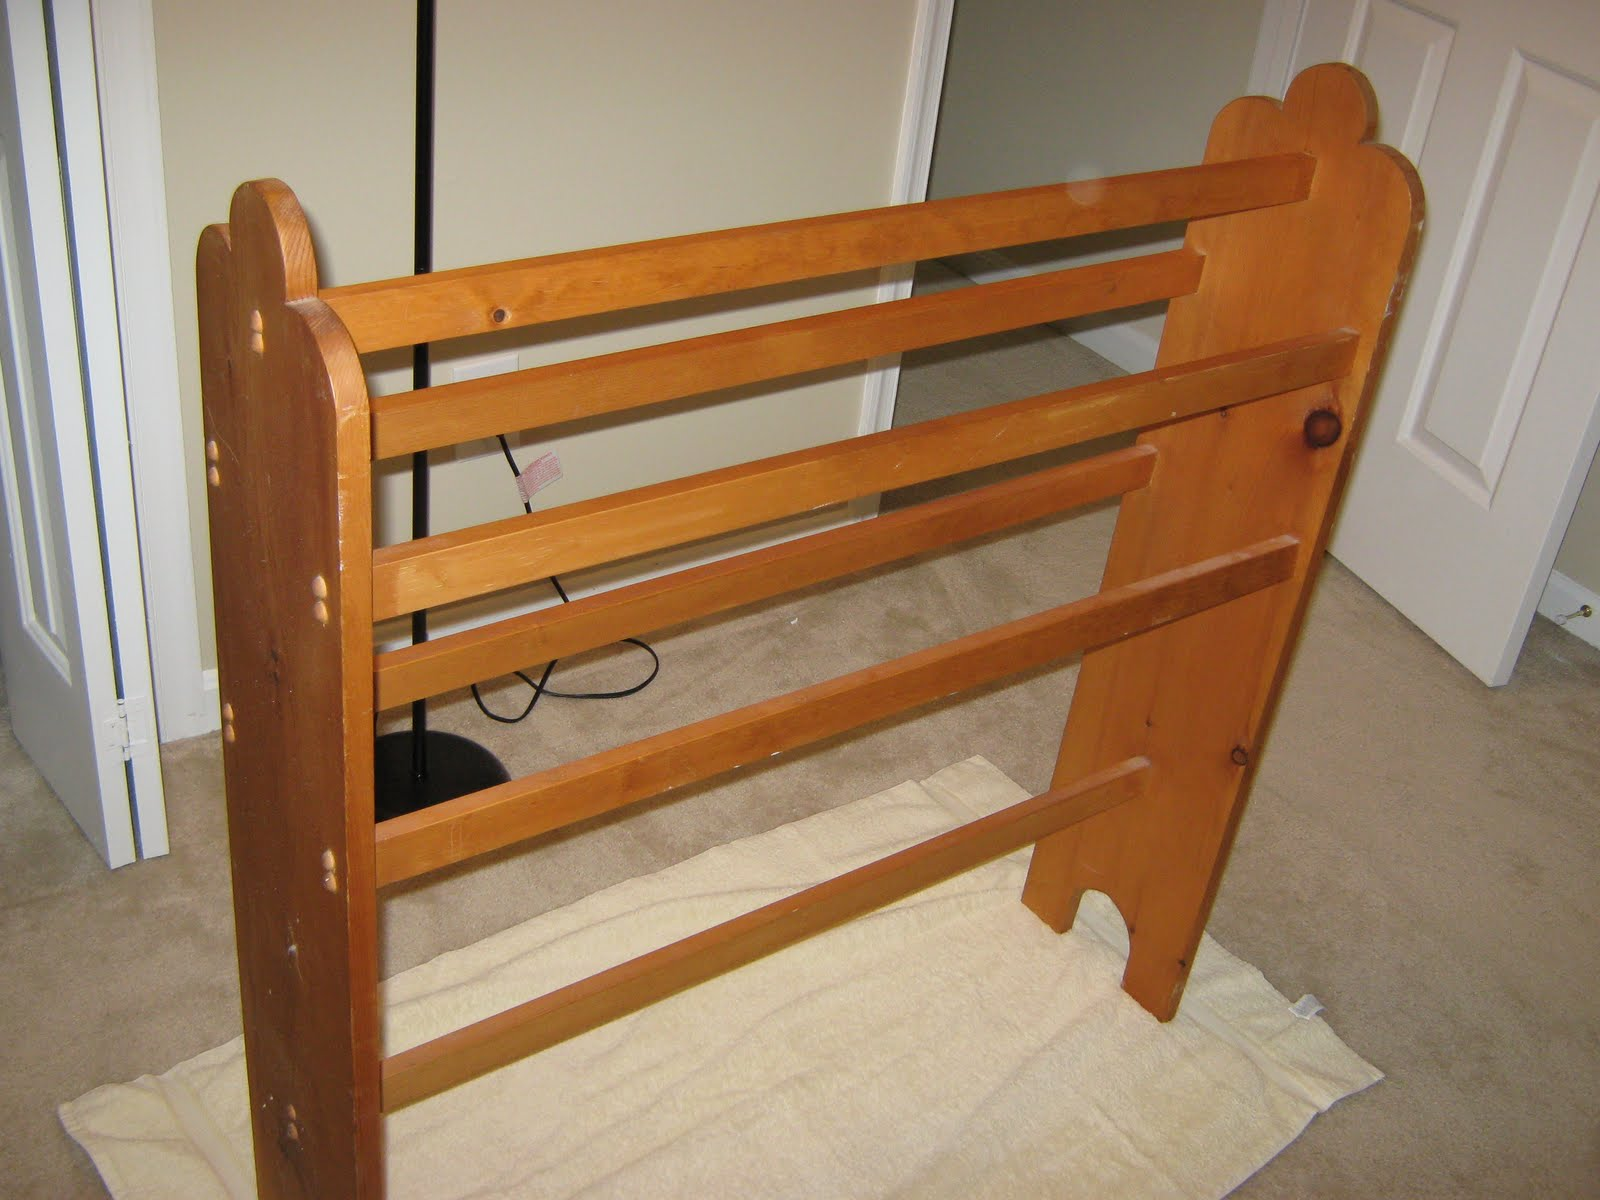 Well-liked Quilt Rack Plans Woodworking With Elegant Example | egorlin.com BC16